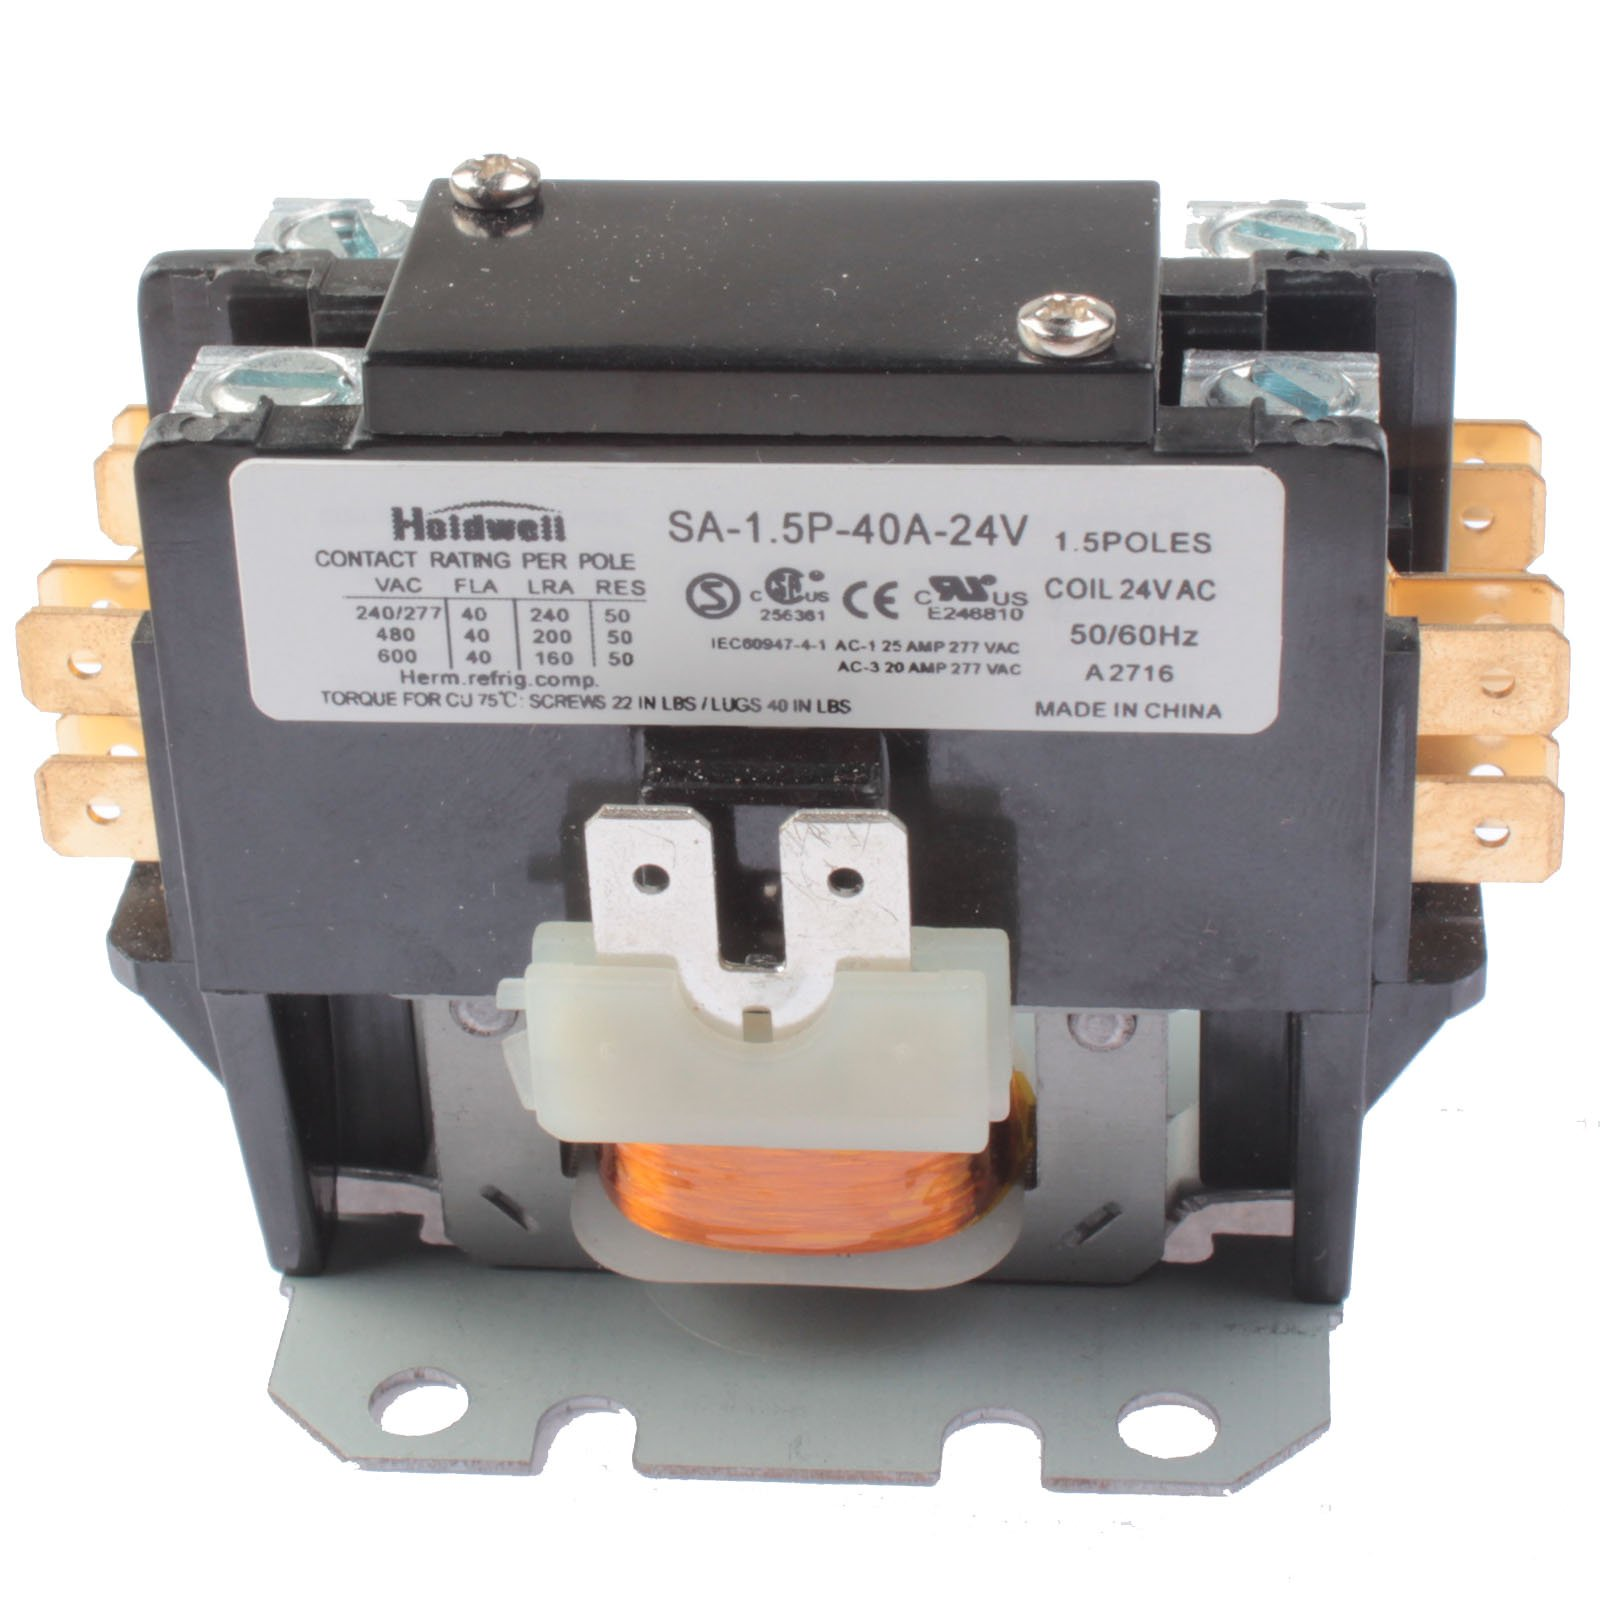 Holdwell SA-1.5P-40A-24V 1 Pole Normally Open Double Make with shunt 40 Amp 24V Coil Definite Purpose Contactor